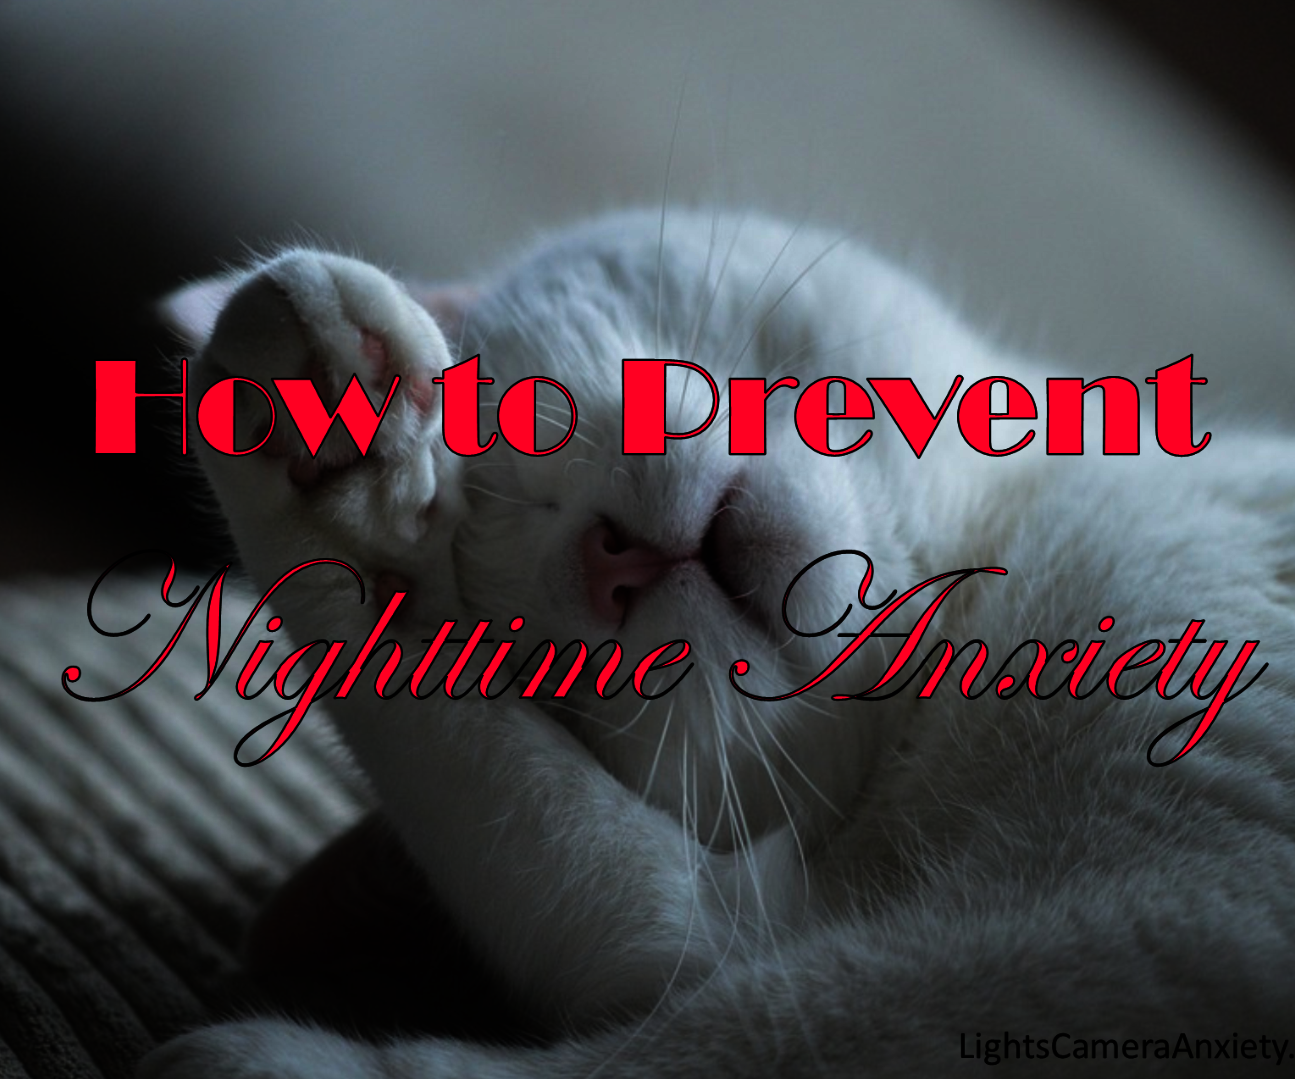 How to Cure Nighttime Anxiety